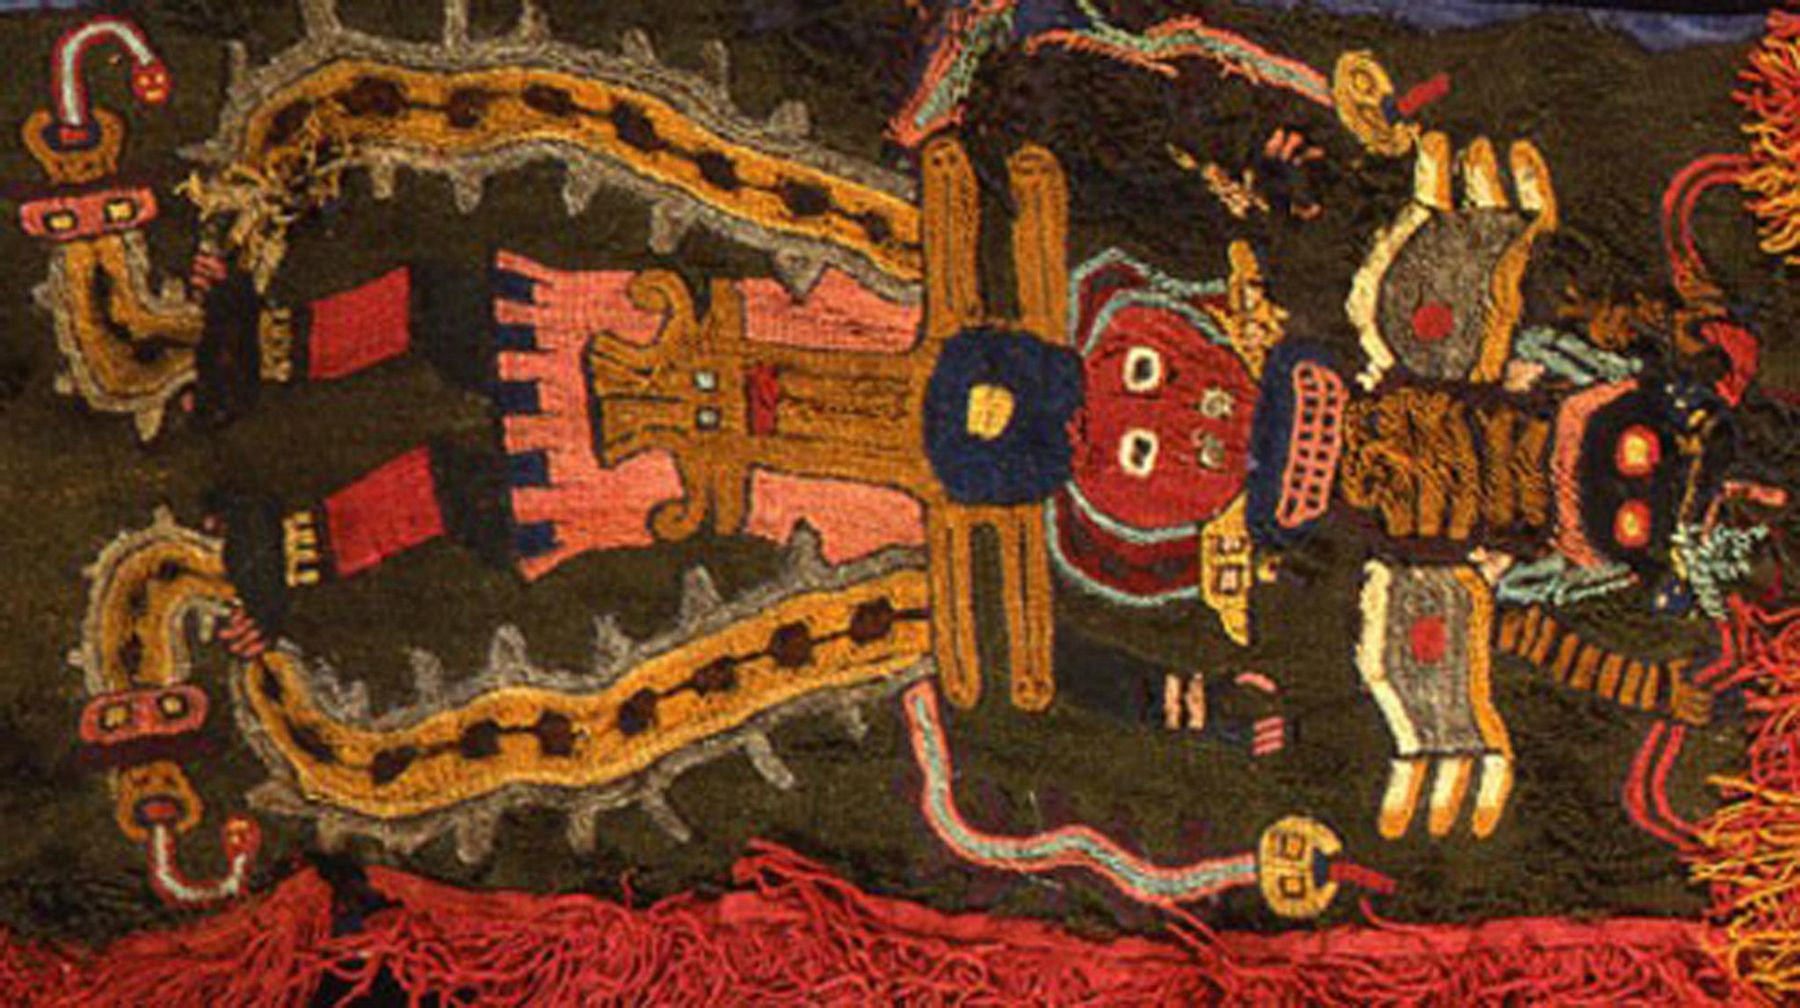 One of the ancient Paracas textiles to be returned by Sweden.